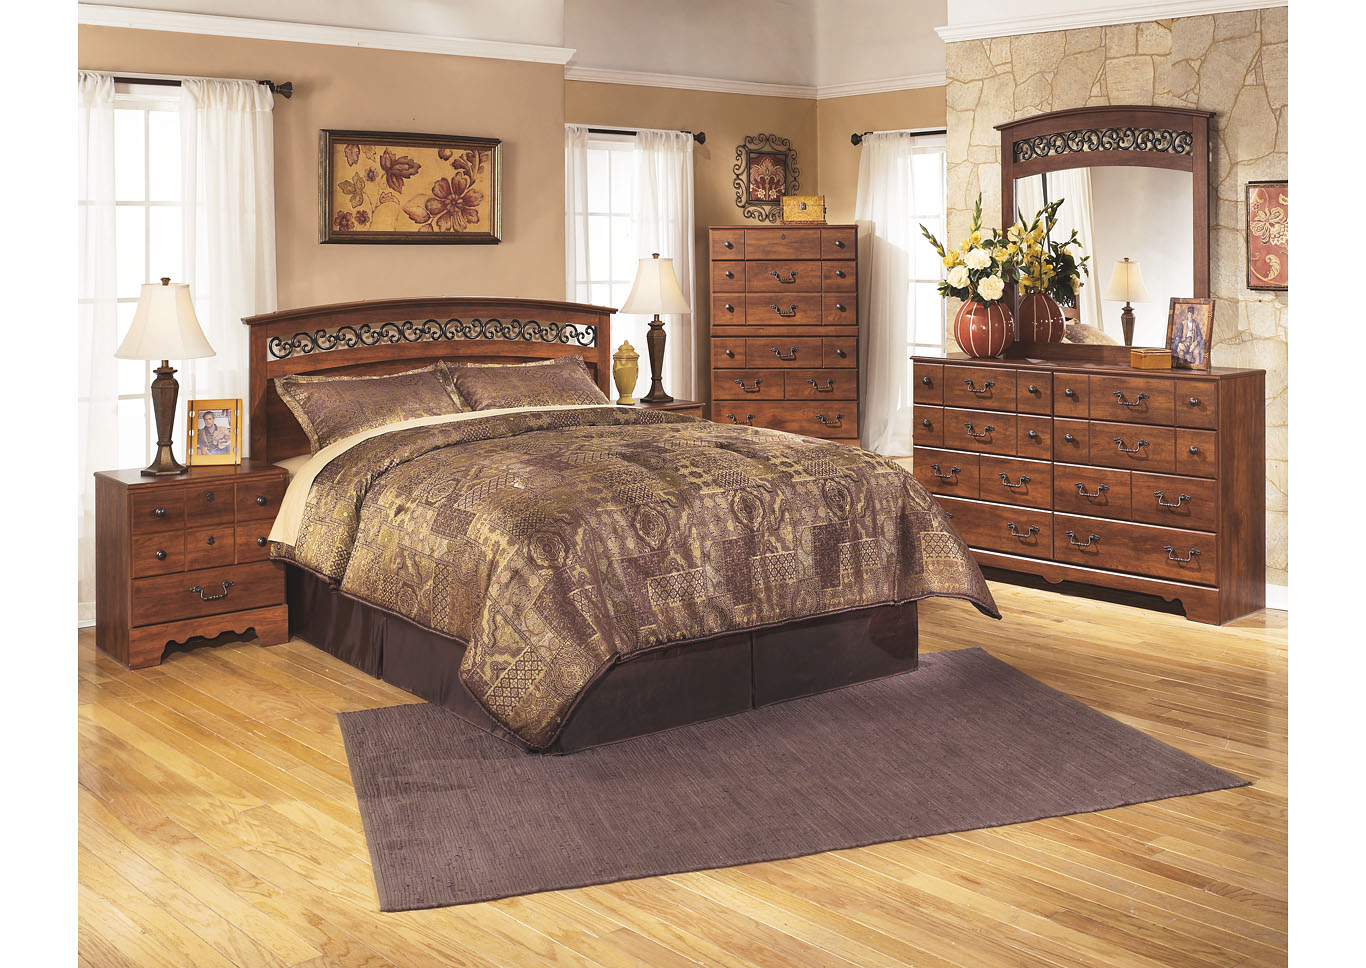 Timberline Queen/Full Panel Headboard, Dresser & Mirror,Signature Design by Ashley